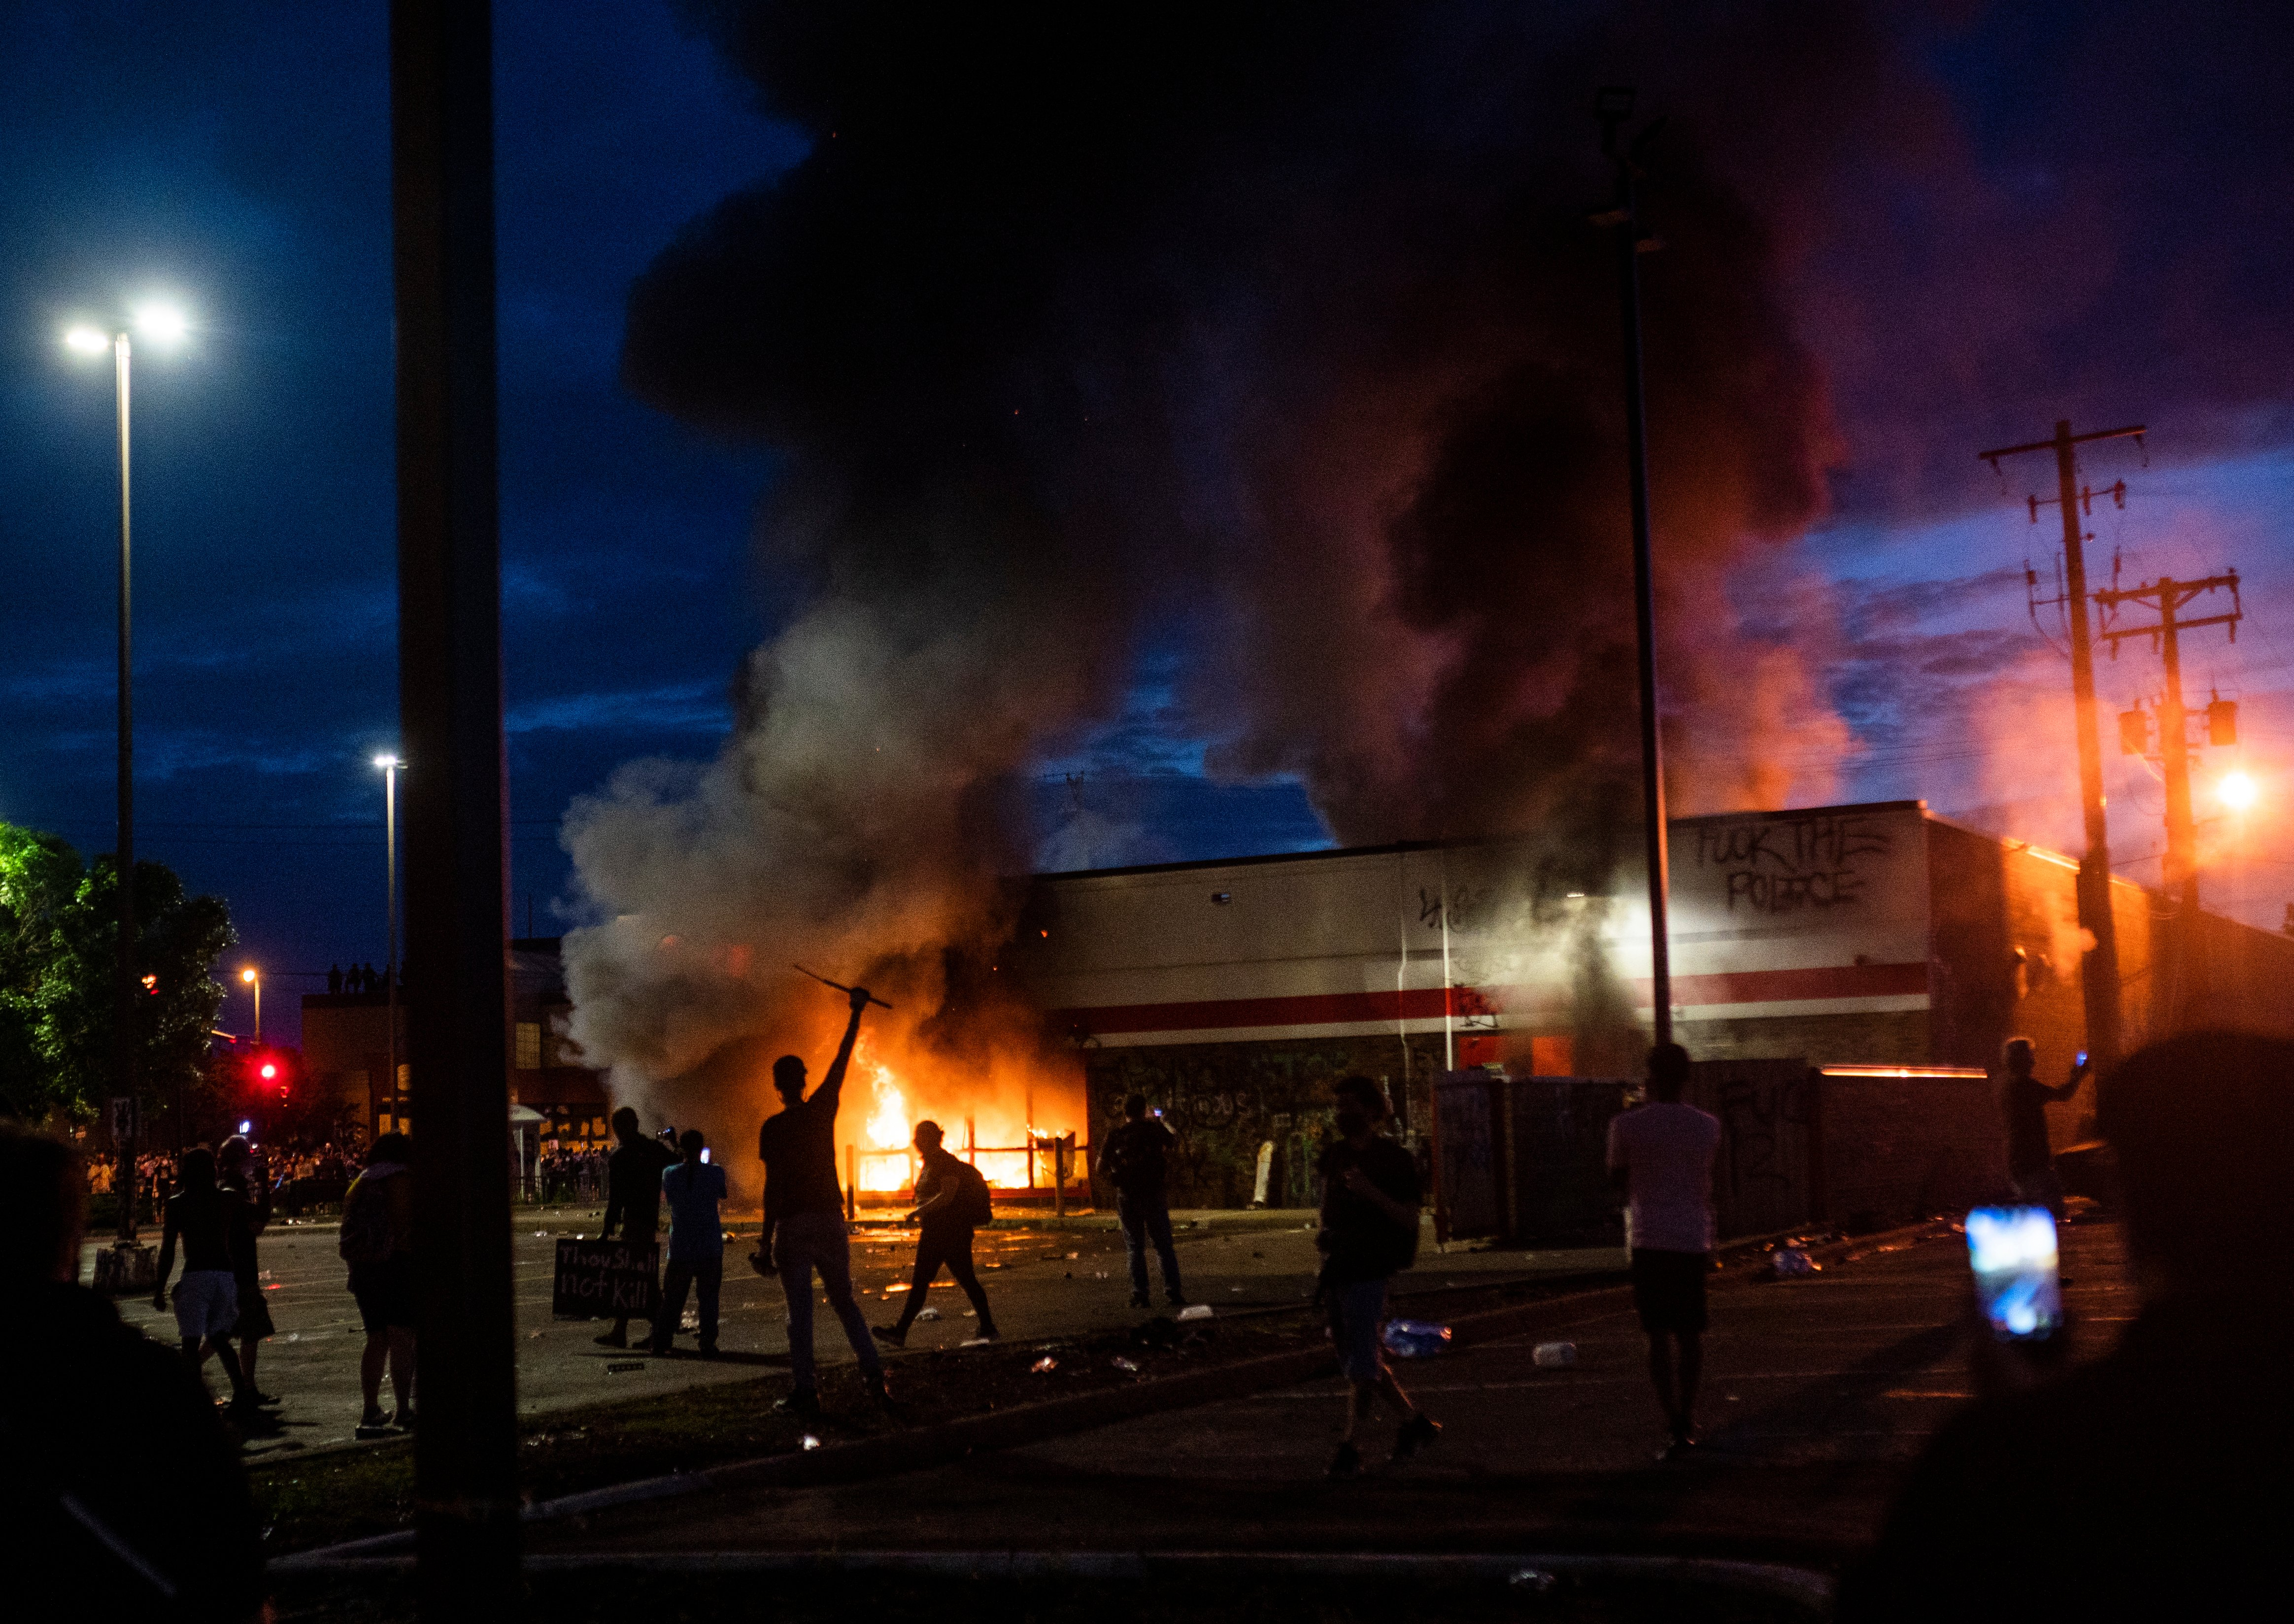 (EDITOR'S NOTE: Alternate crop.) A fire burns inside of an Auto Zone store near the 3rd Police Precinct on May 27, 2020 in Minneapolis, Minnesota. (Stephen Maturen/Getty Images)